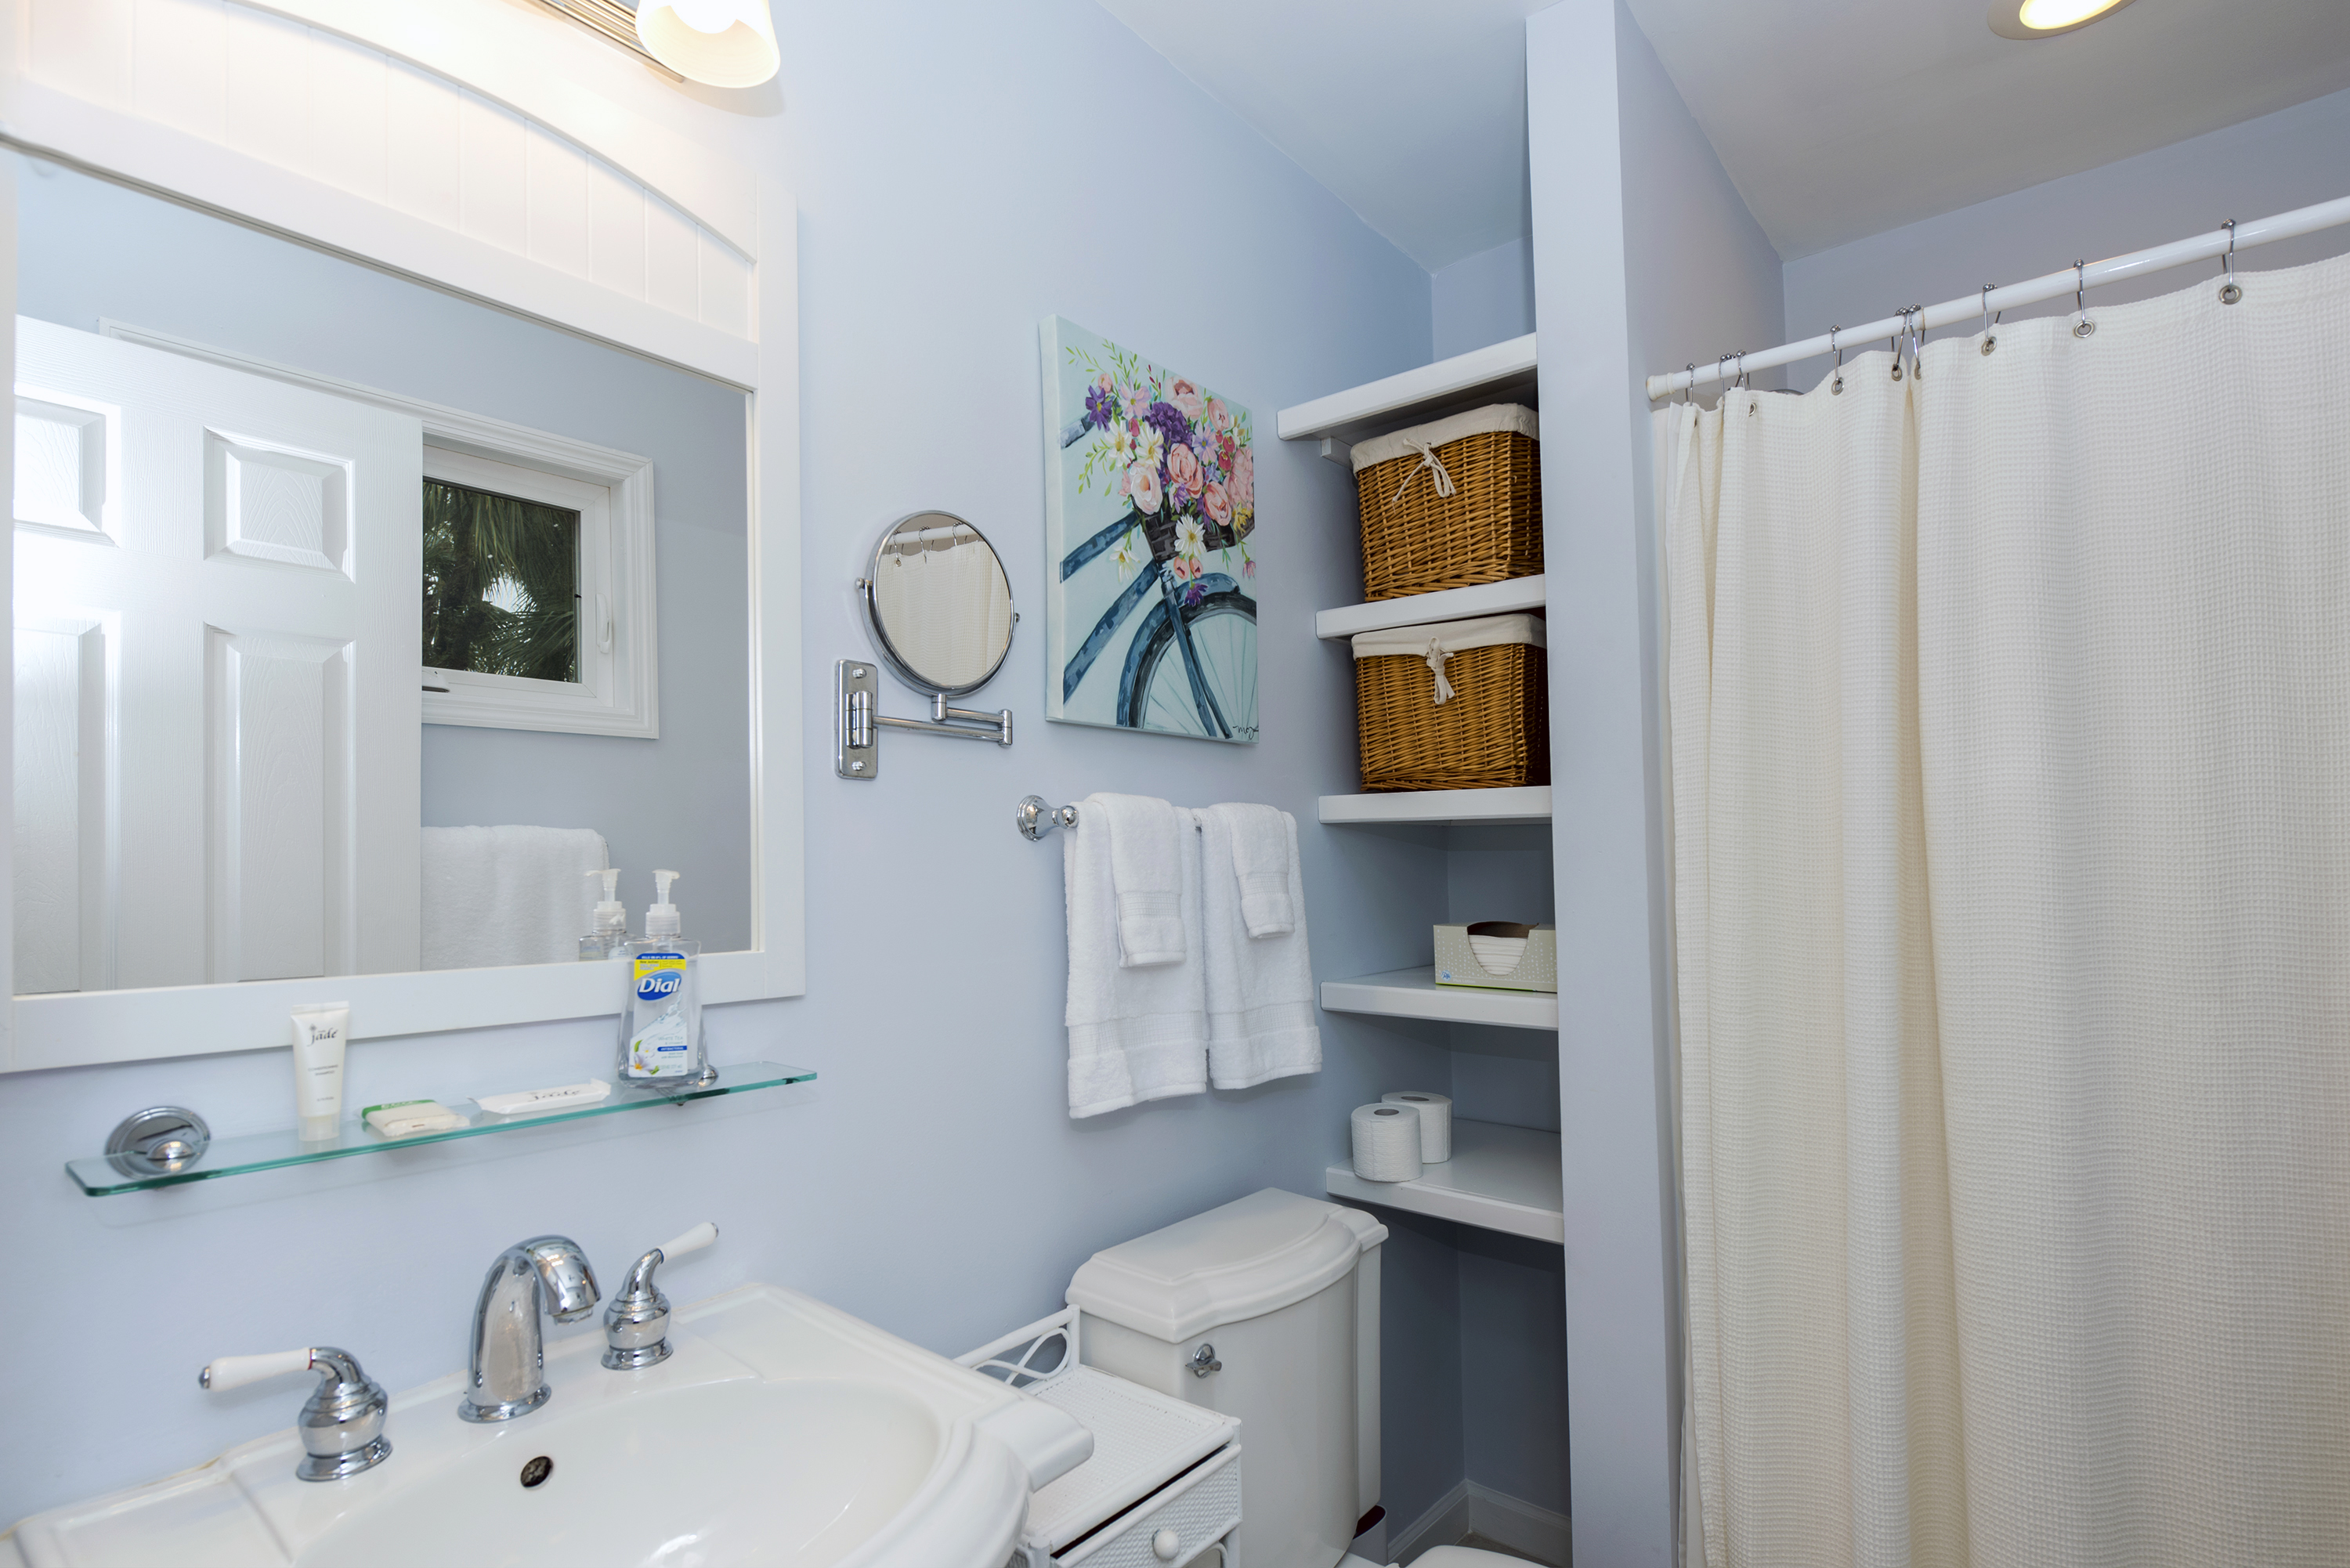 The master bath has a pedestal sink and shower.